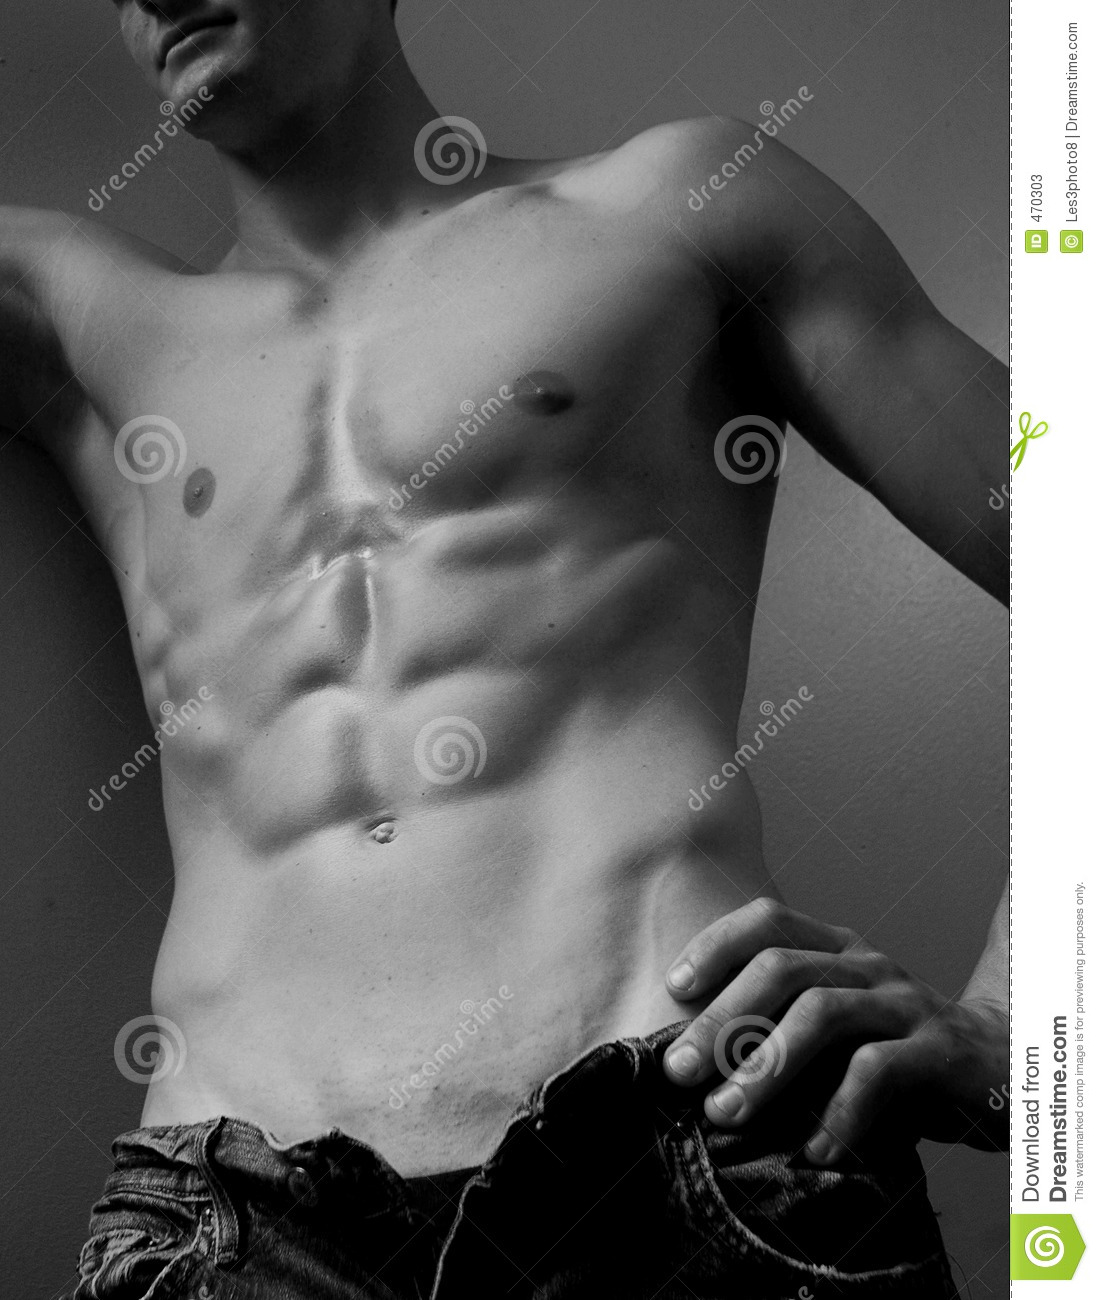 Download Male abs stock image. Image of buff, chap, strong, abdomen - 470303